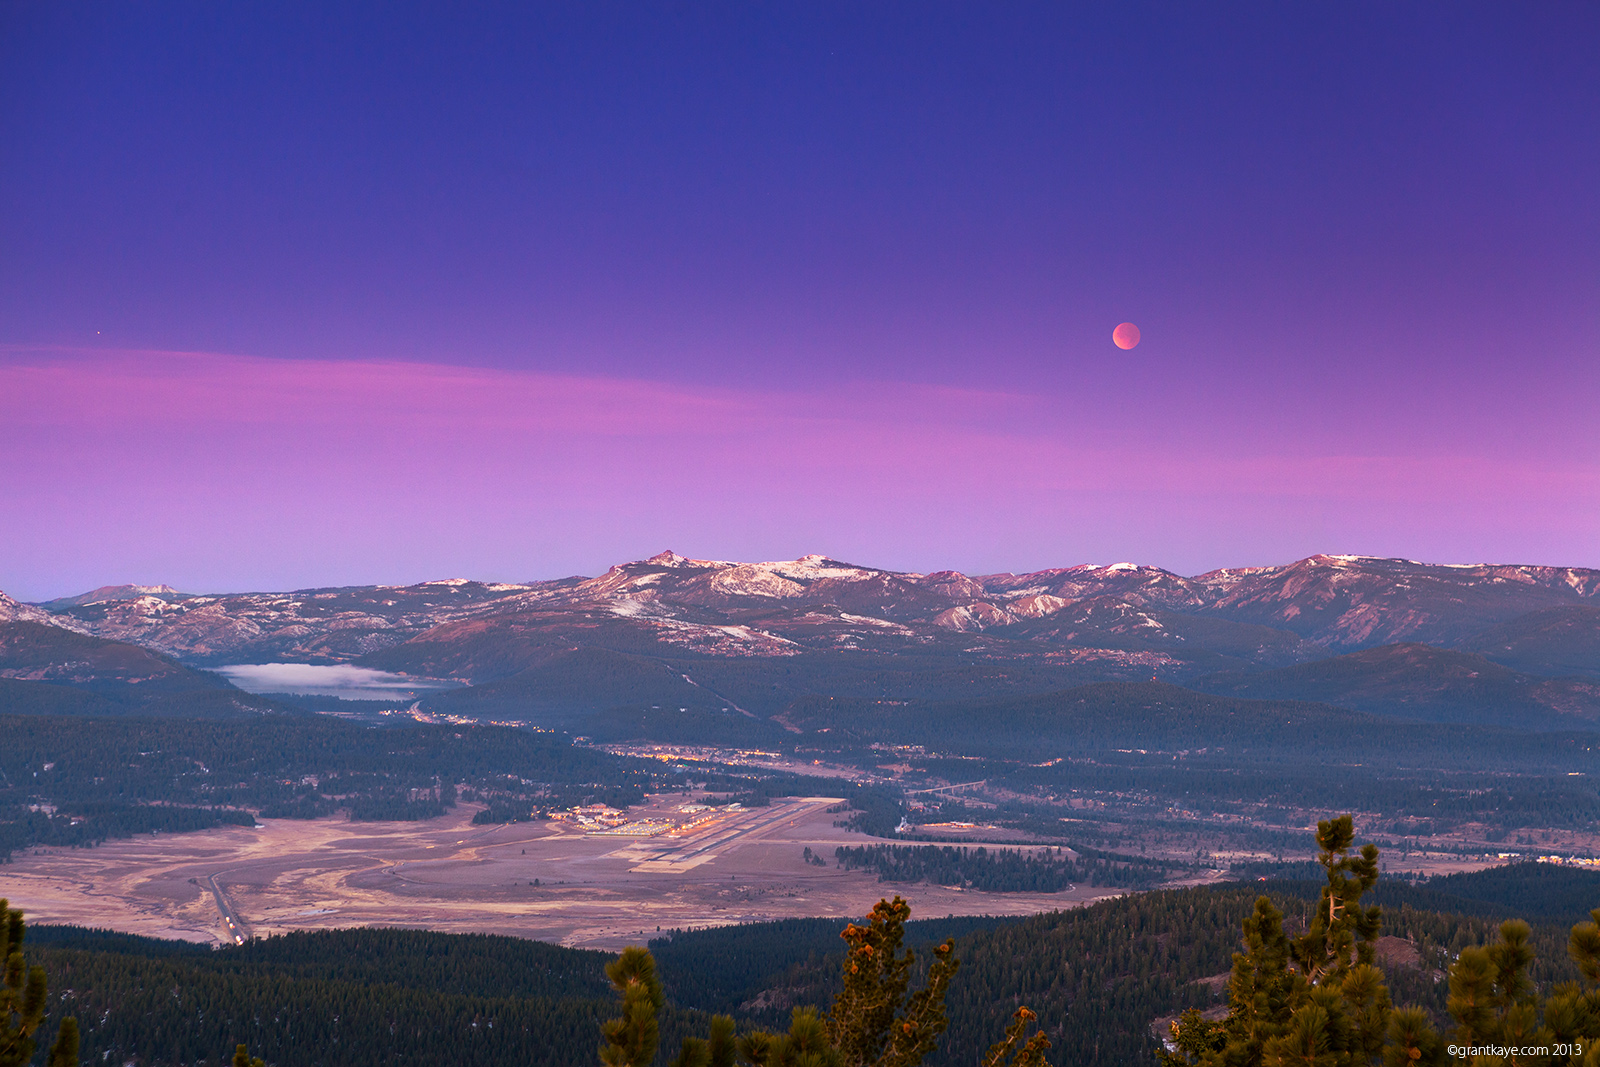 Eclipsed full moon setting over Tahoe Donner, 12/10/2011